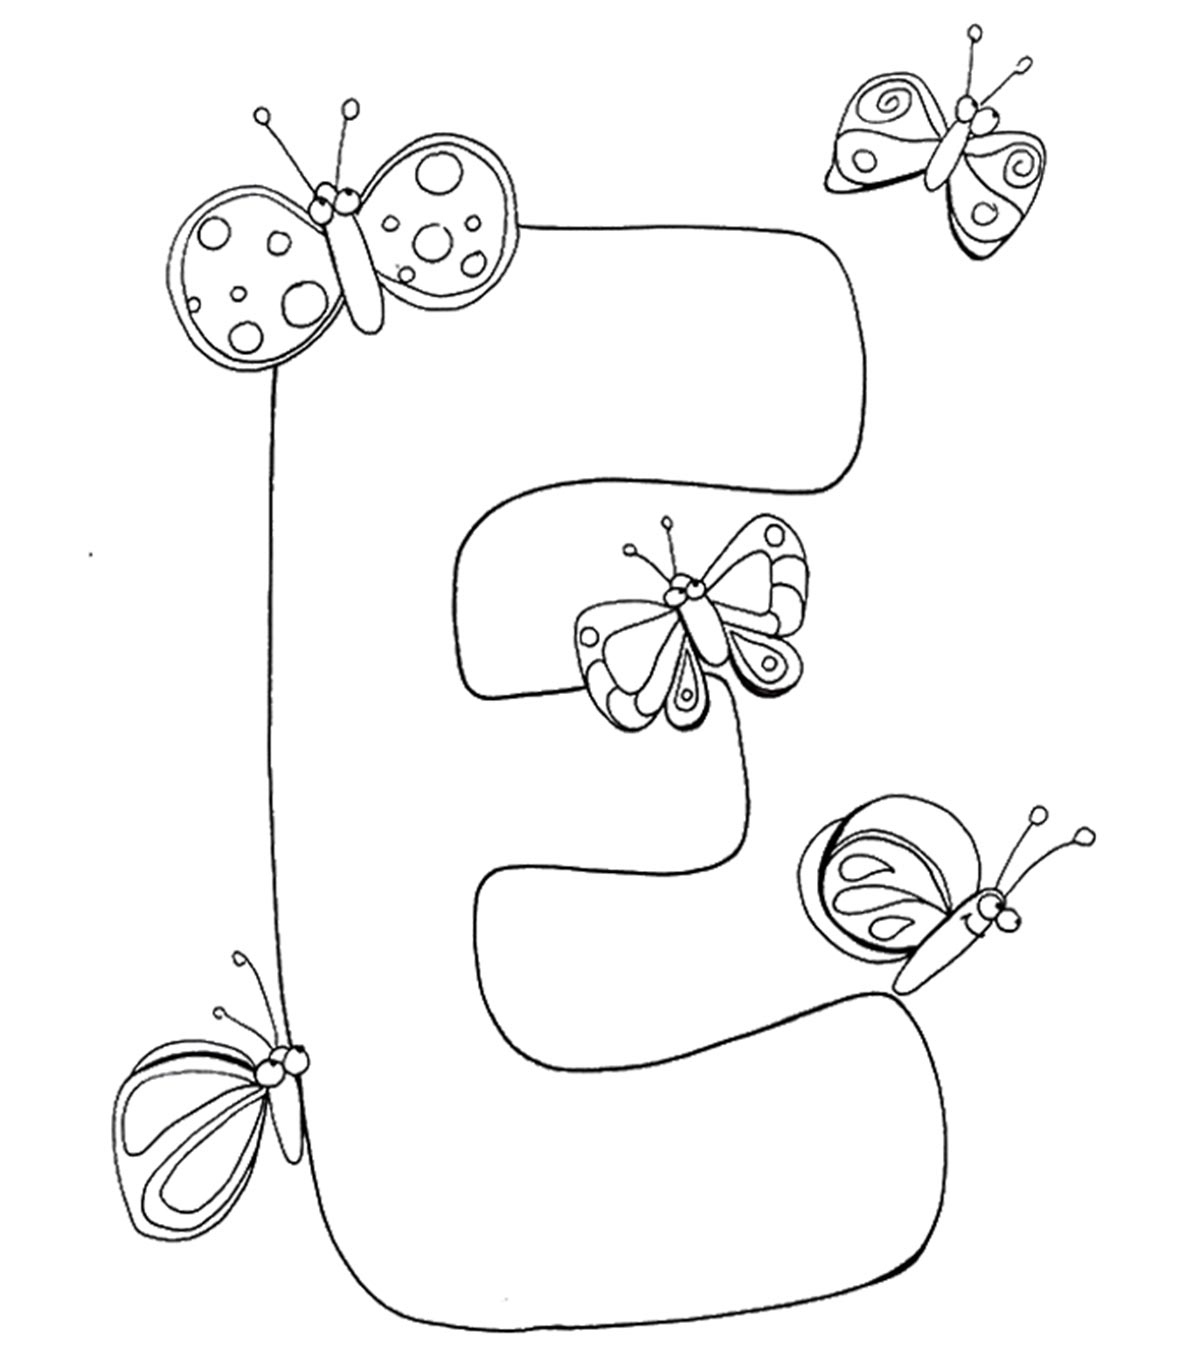 ABC Coloring Pages - GetColoringPages.com | 1350x1200